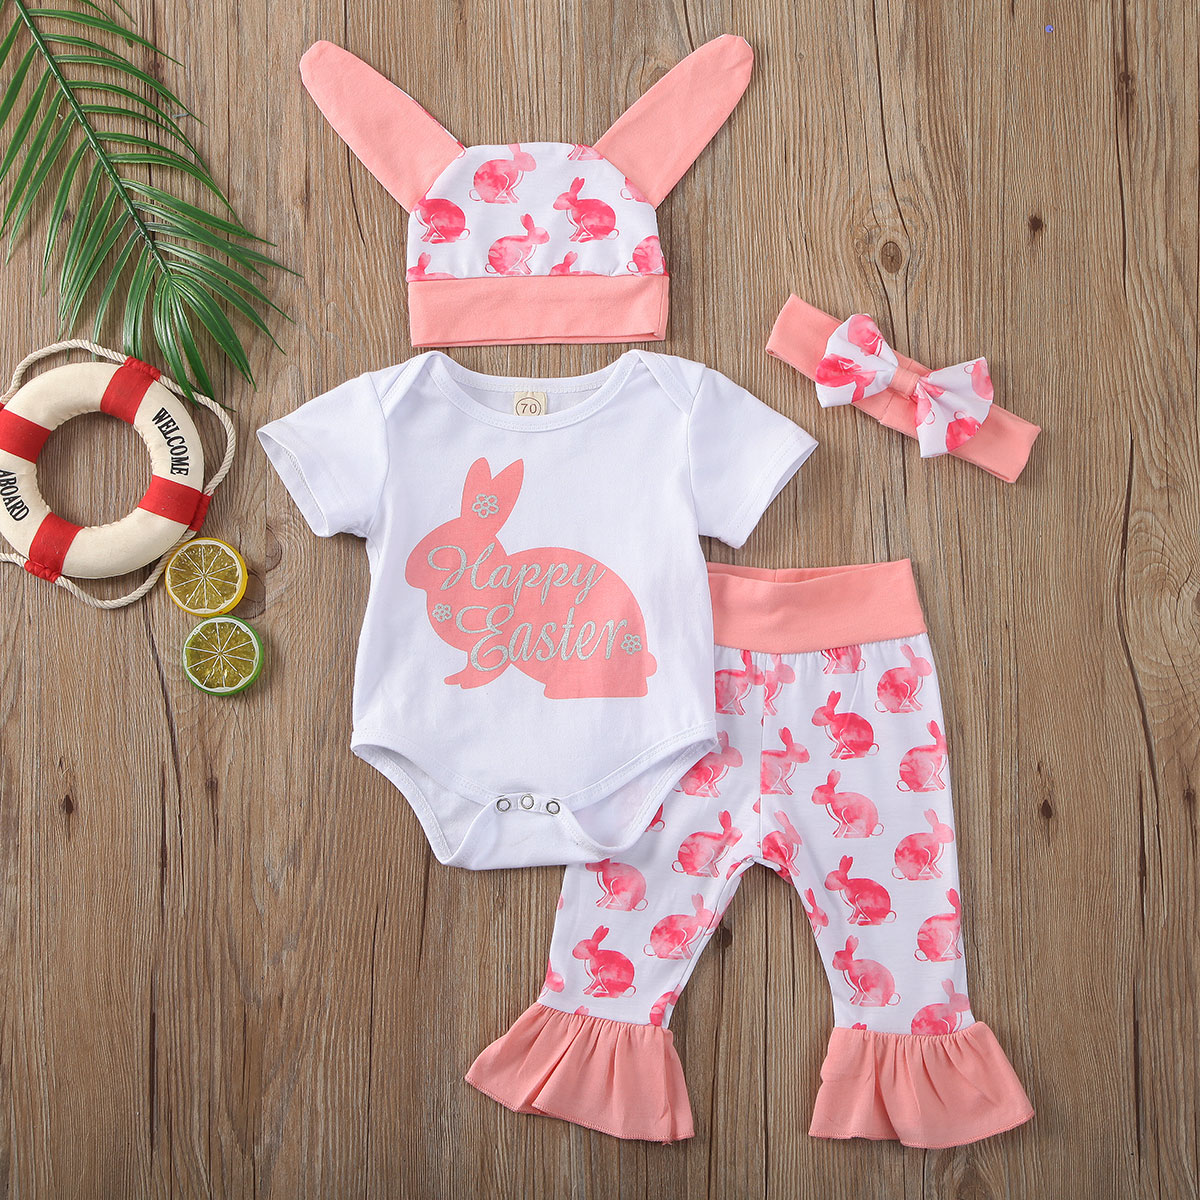 Personalised My First Easter 2019 Baby Vest Romper Baby Gifts Bunny Cute Easter